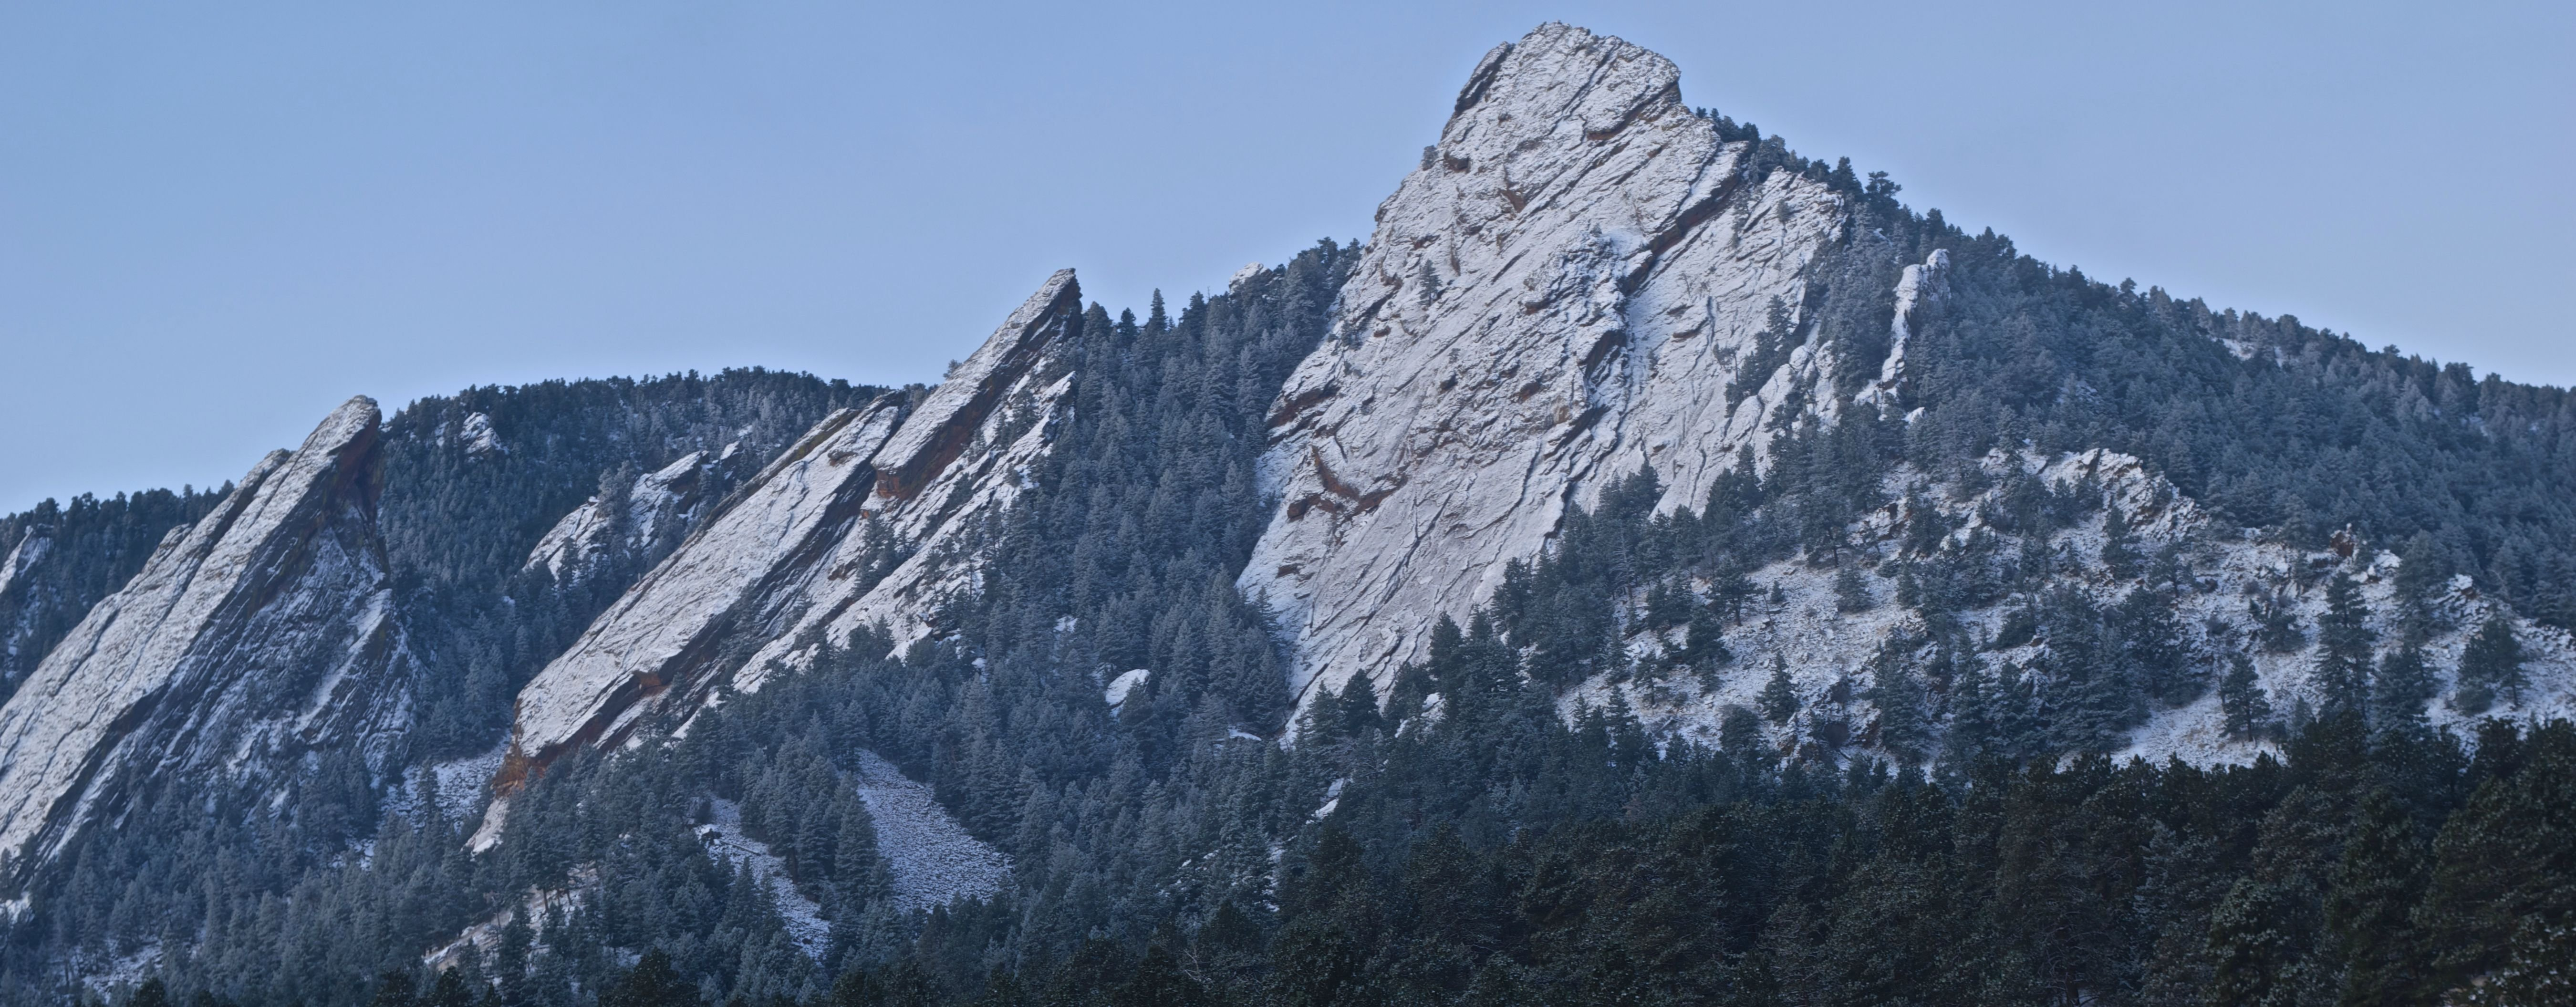 boulder colorado wallpaper - photo #18